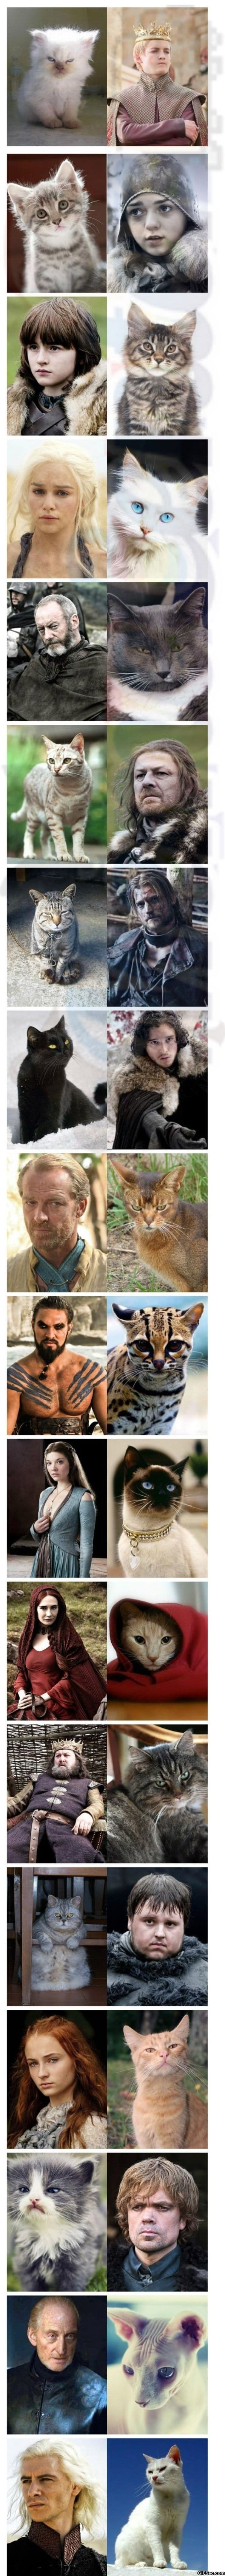 game-of-thrones-vs-game-of-cats